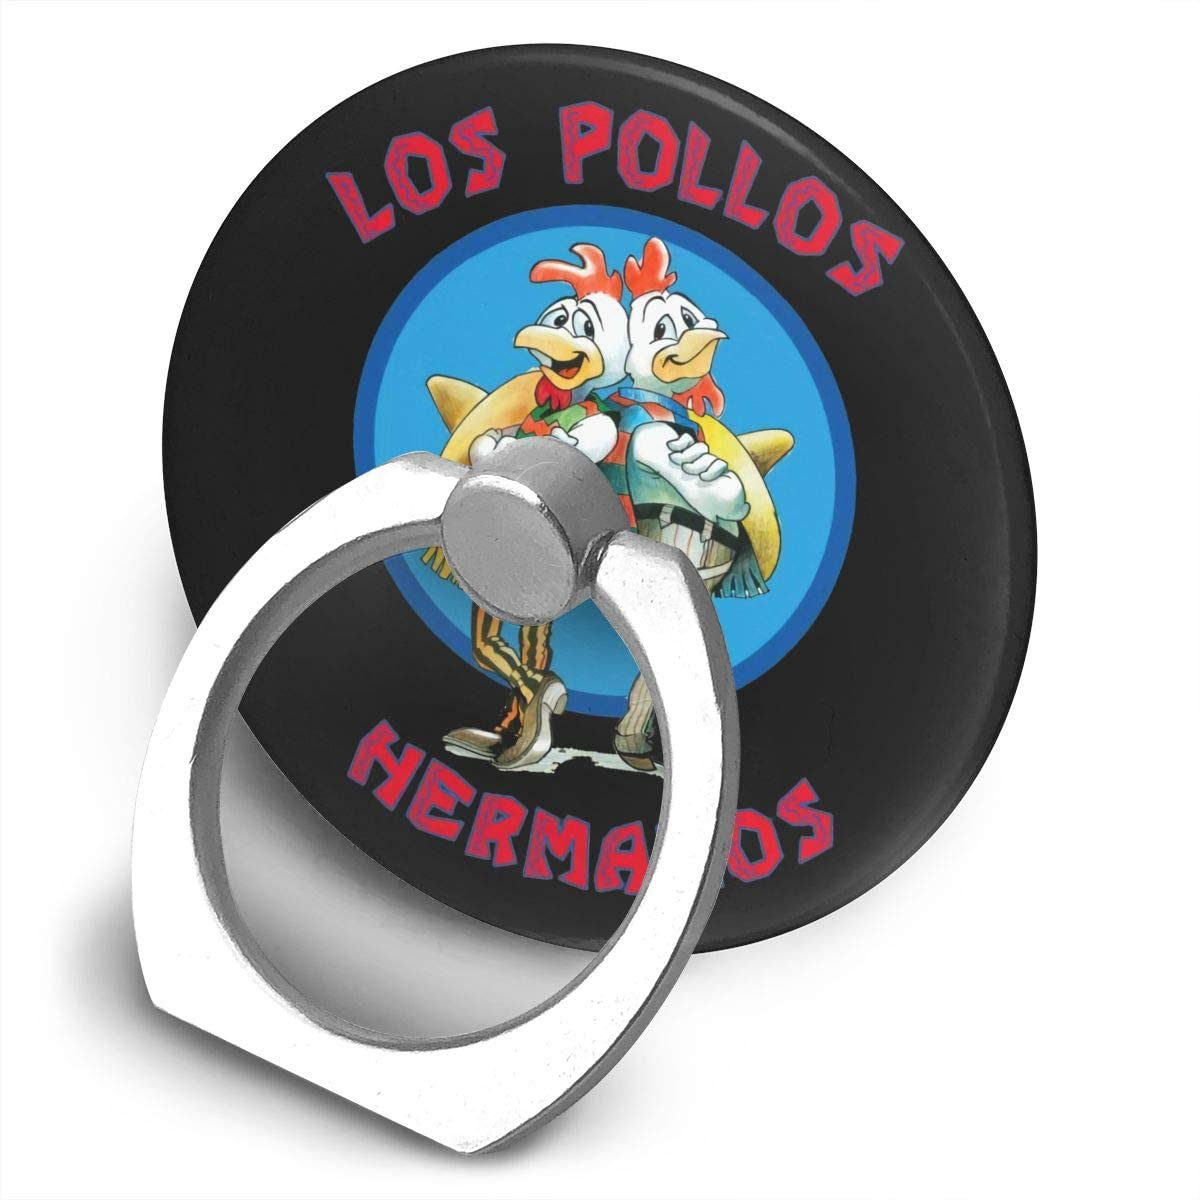 Los Pollos Hermanoscompatible with All Smartphone 360 Degree Holder Smartphone